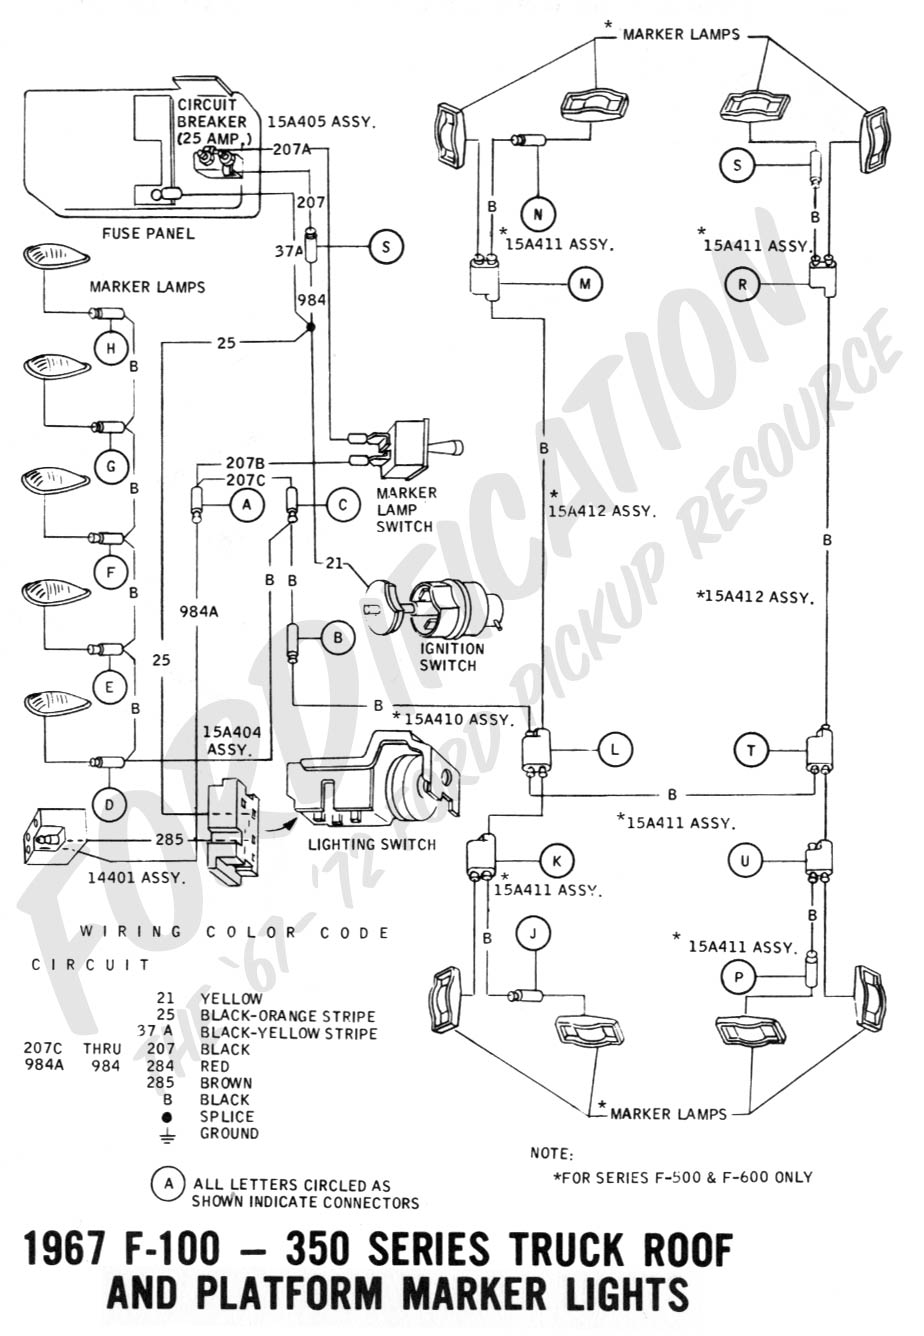 ford truck technical drawings and schematics - section h - wiring ... 1967 ford f100 wiring diagram f100 ford ford steering column wiring diagram fordification.com